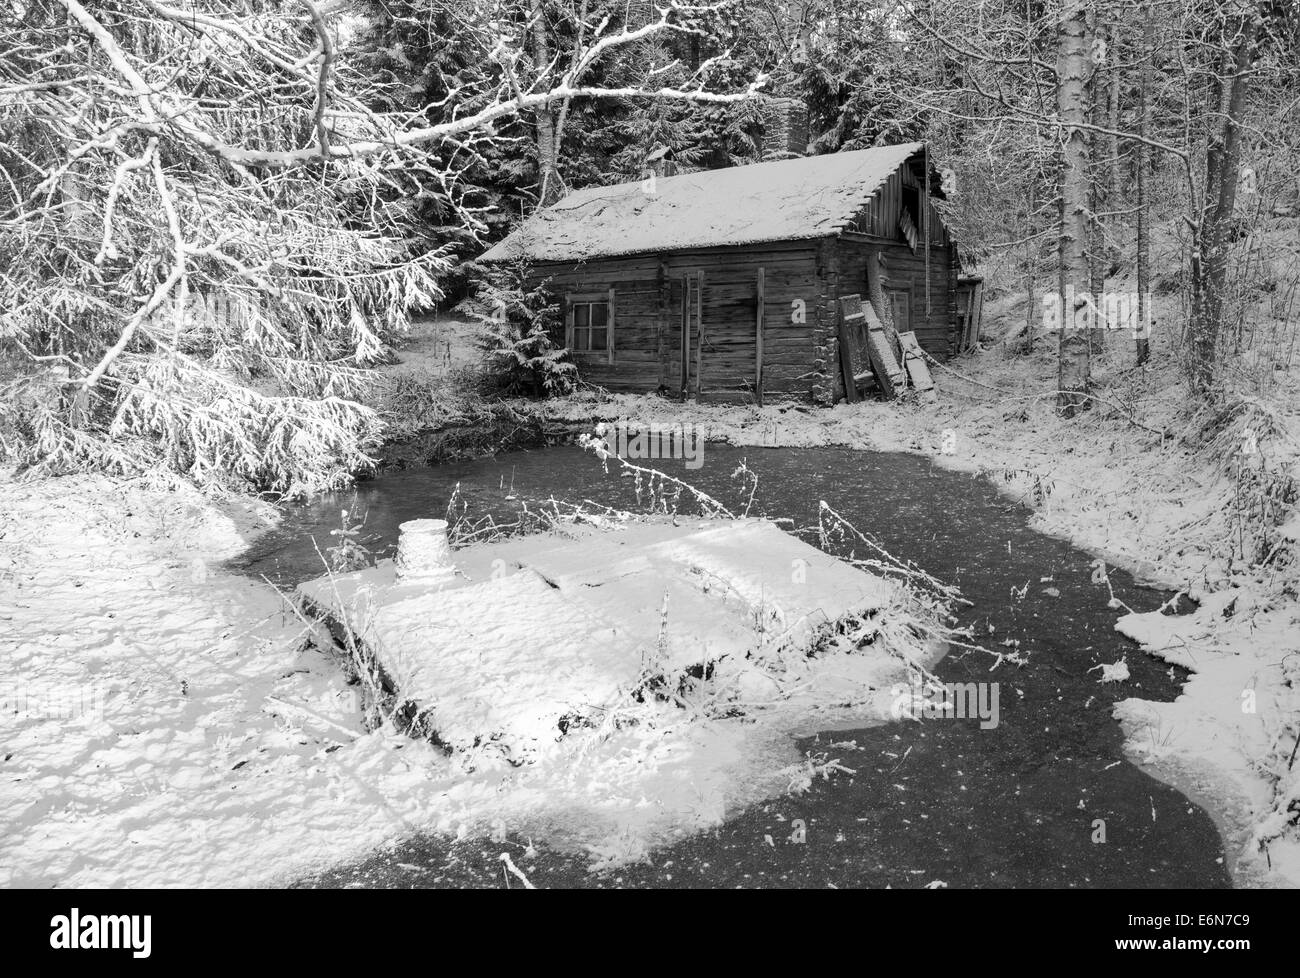 Old decaying wooden sauna building and a well at Winter at Finnish countryside , Finland - Stock Image